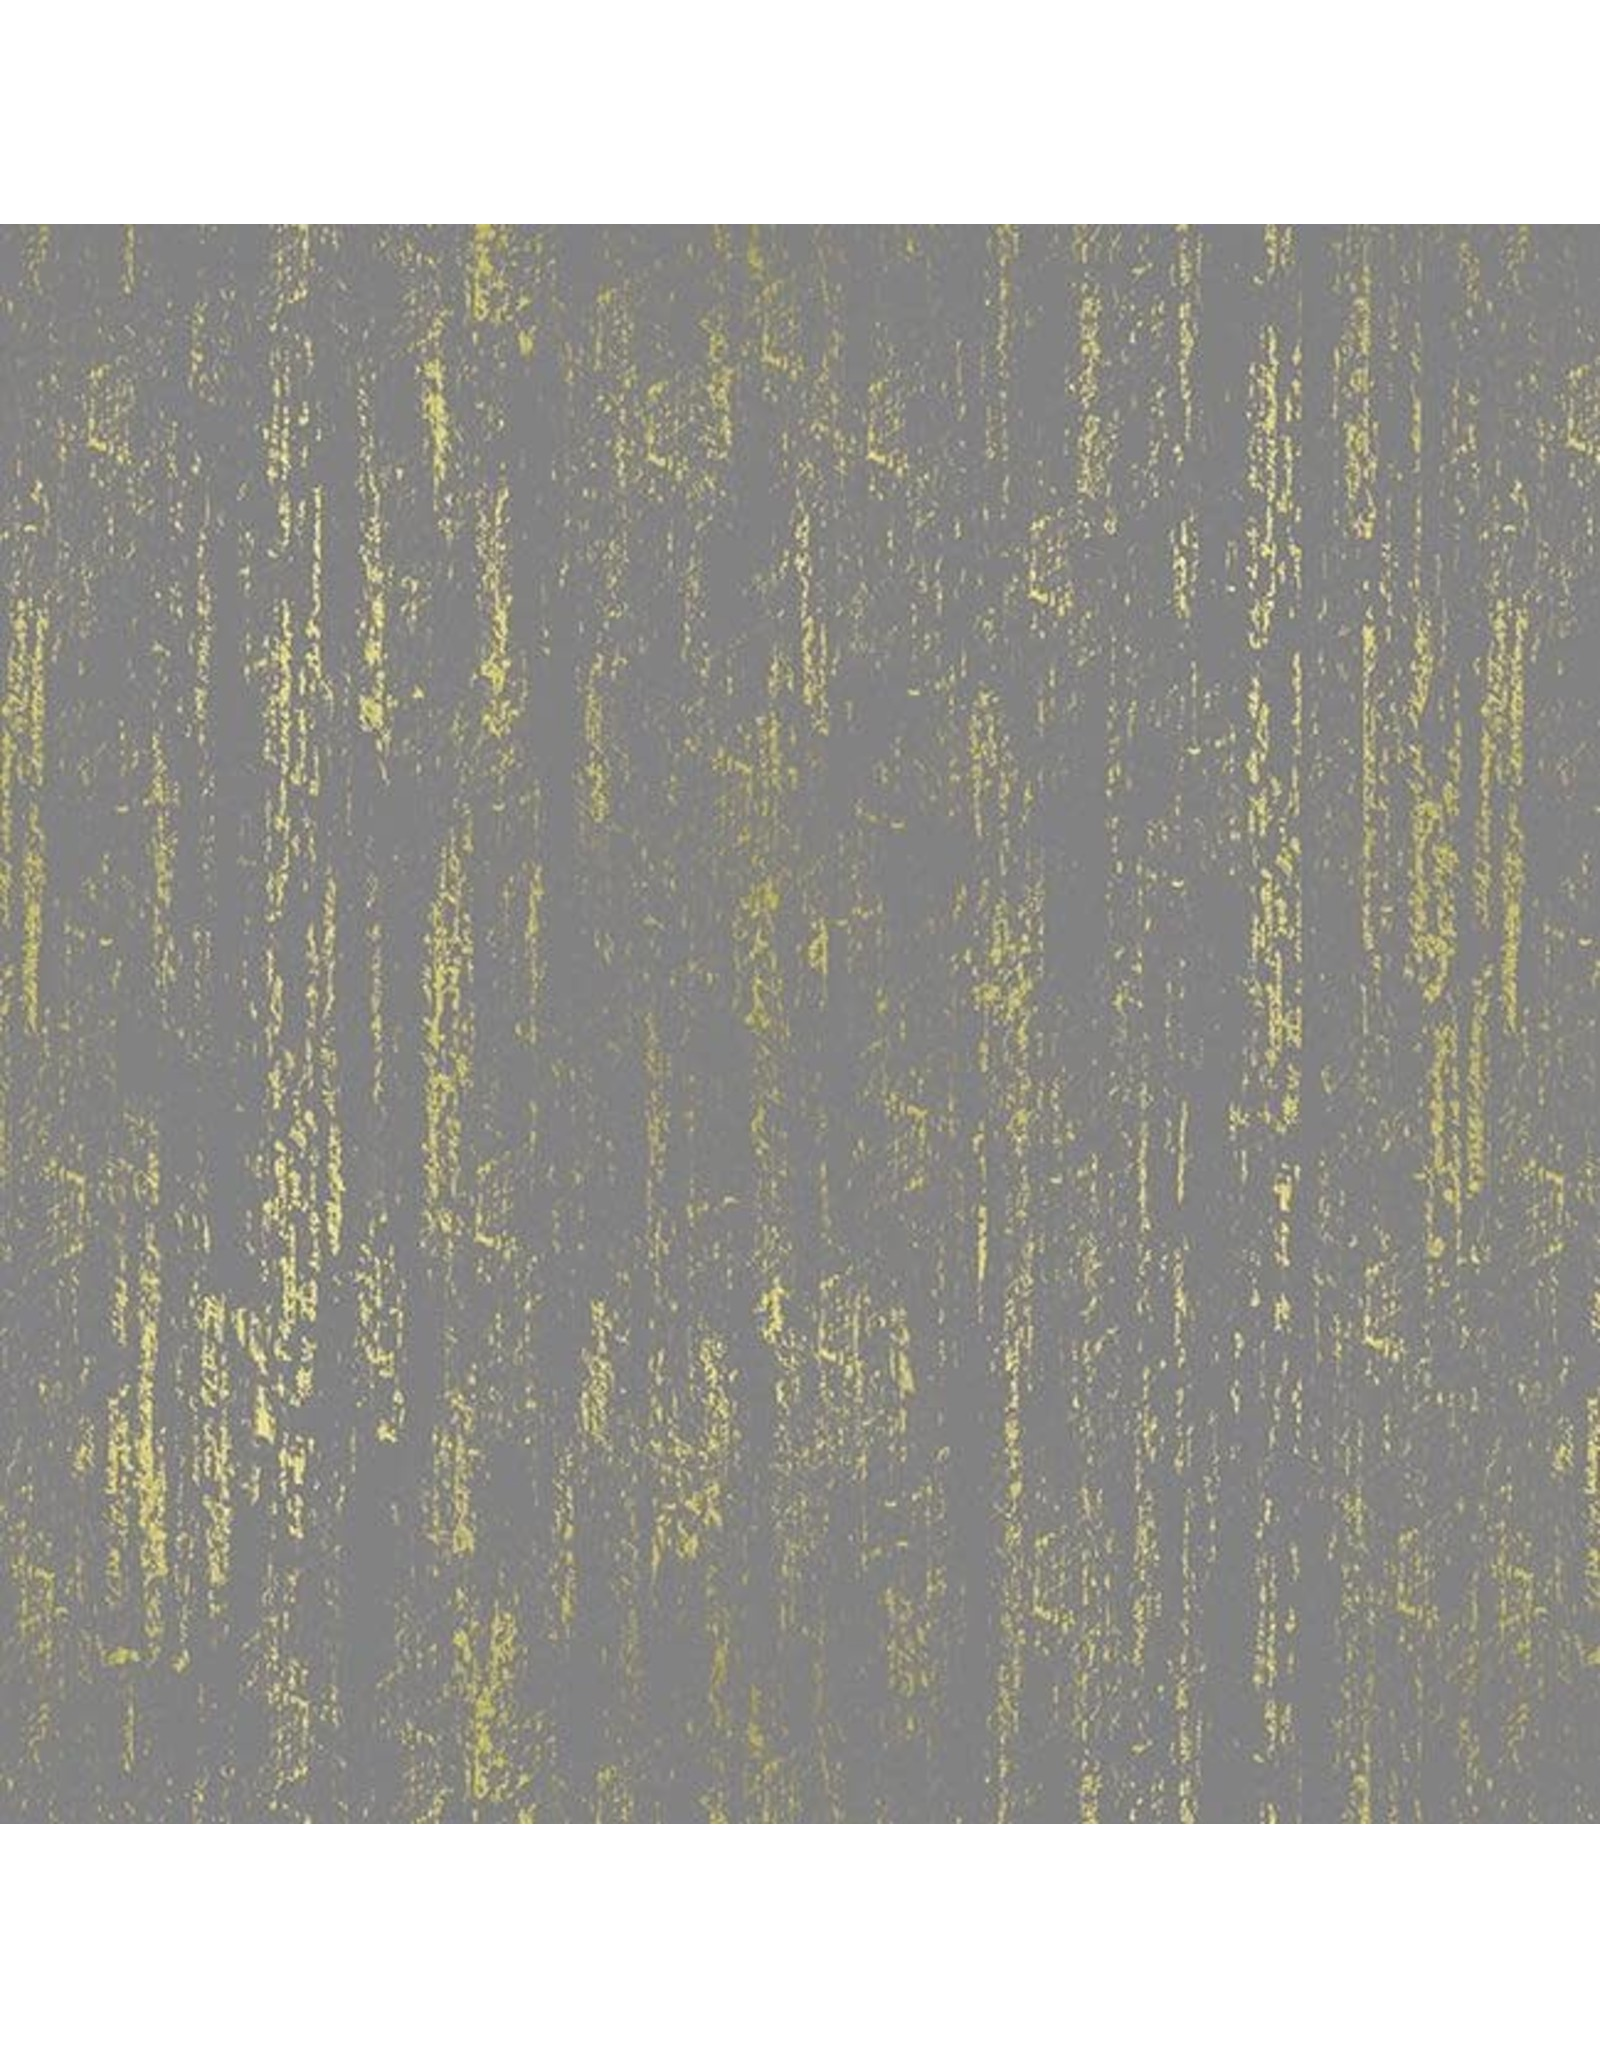 Sarah Watts Ruby Star Society, Brushed Crescent in Slate Gray with Metallic, Fabric Half-Yards RS2005 14M